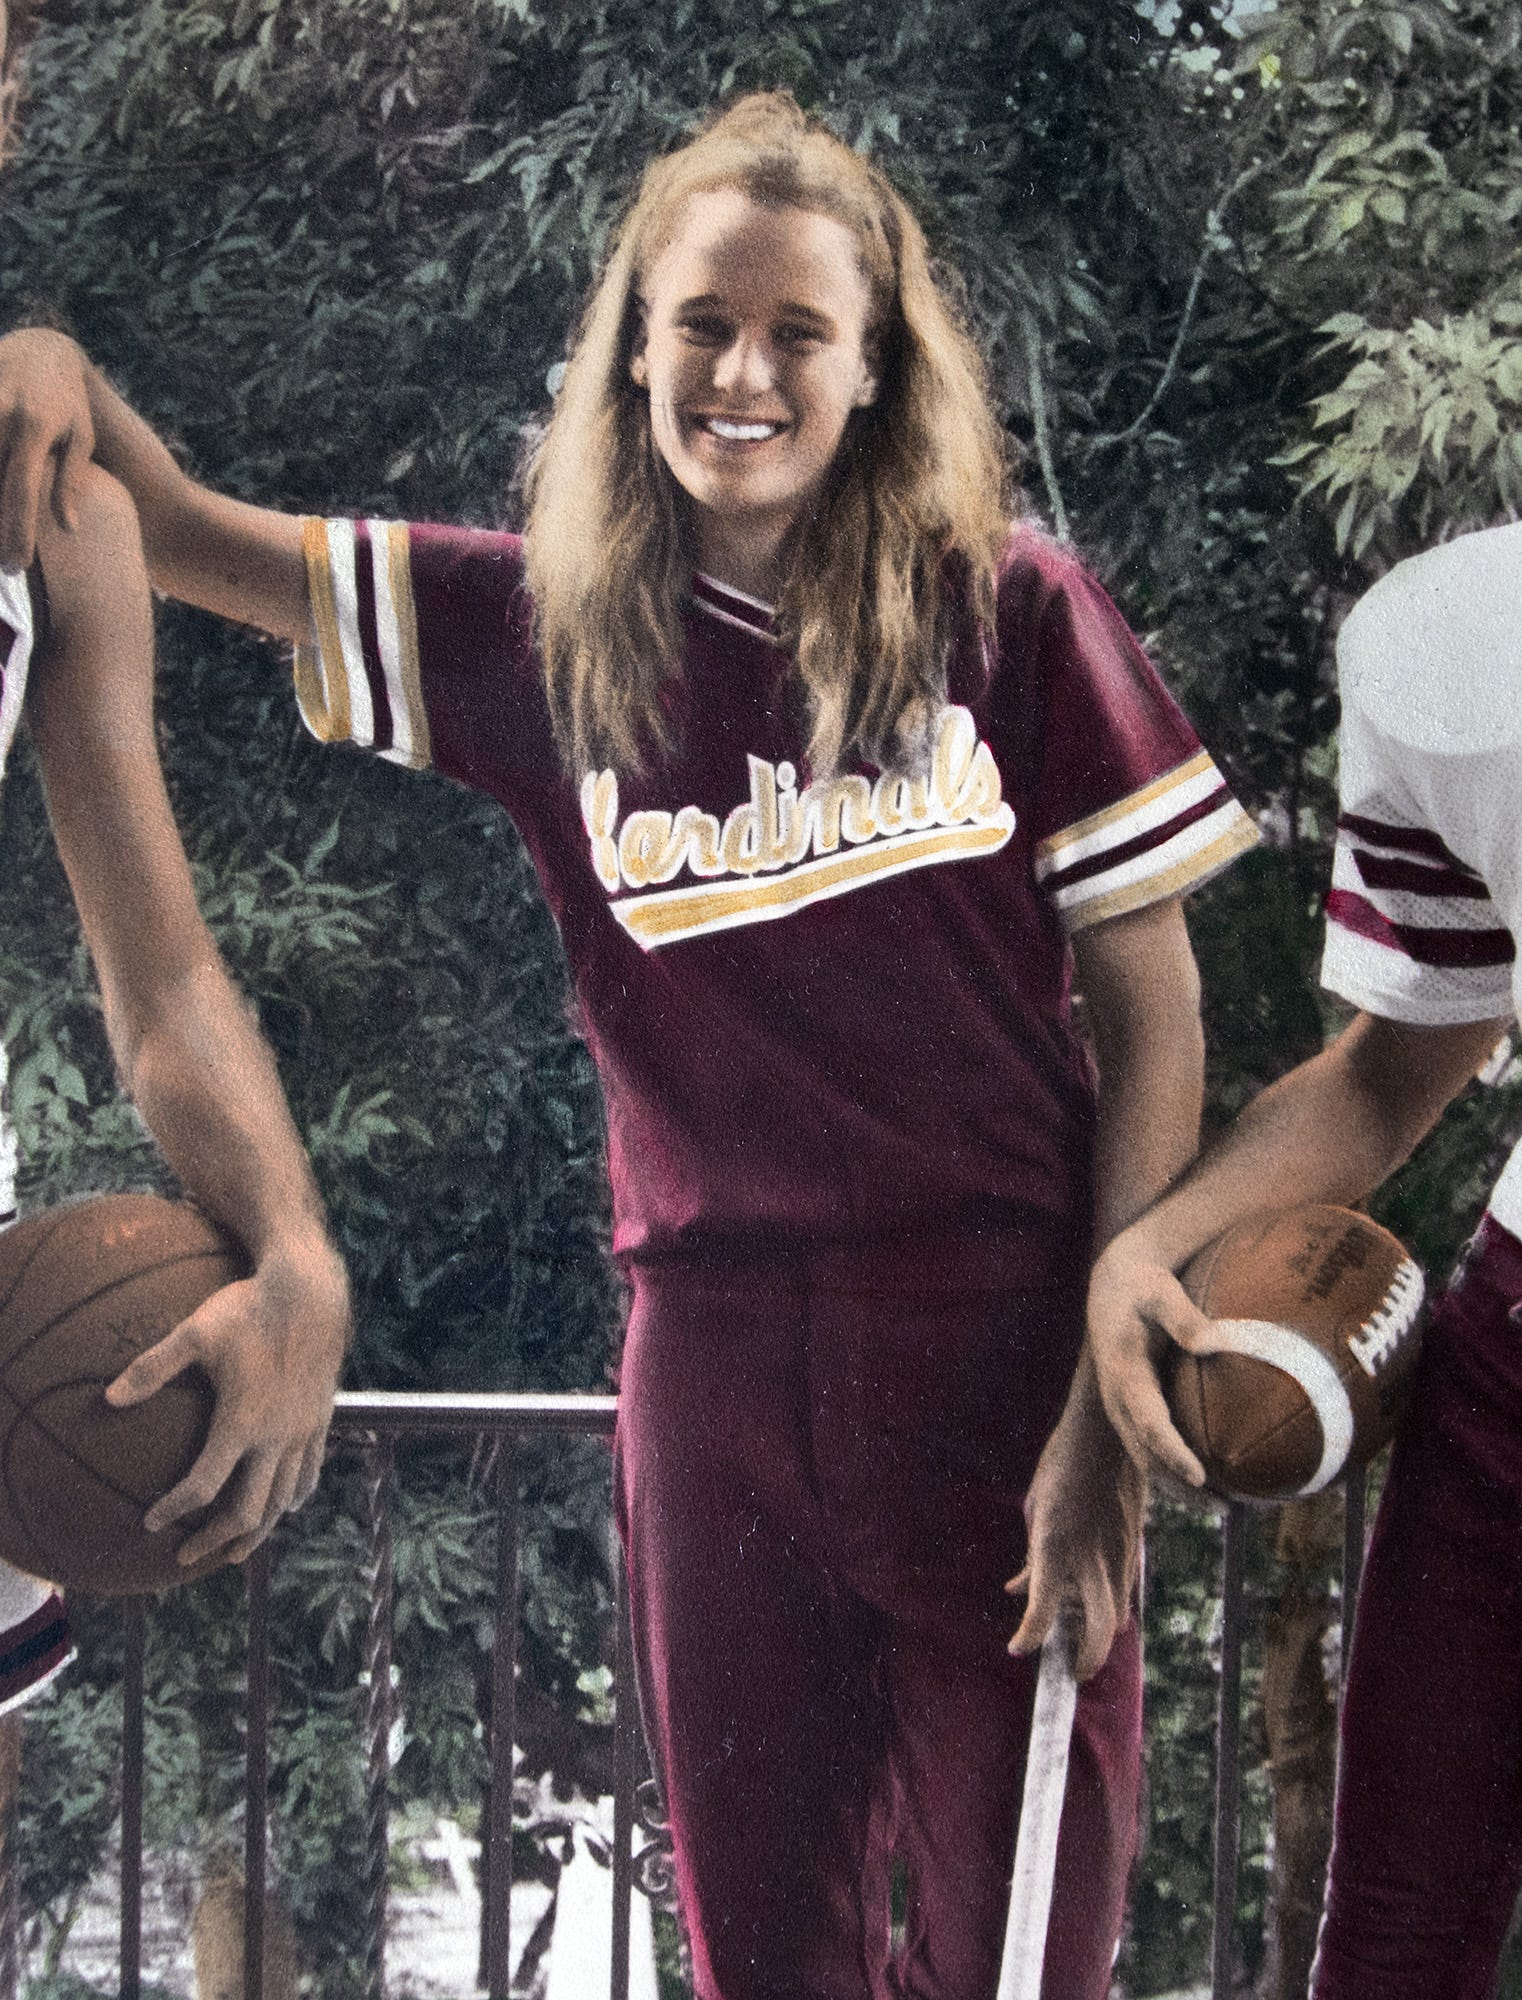 Mary McHale in a sports portrait from 1989-90 when she was 17-18, the time of the priest abuse.